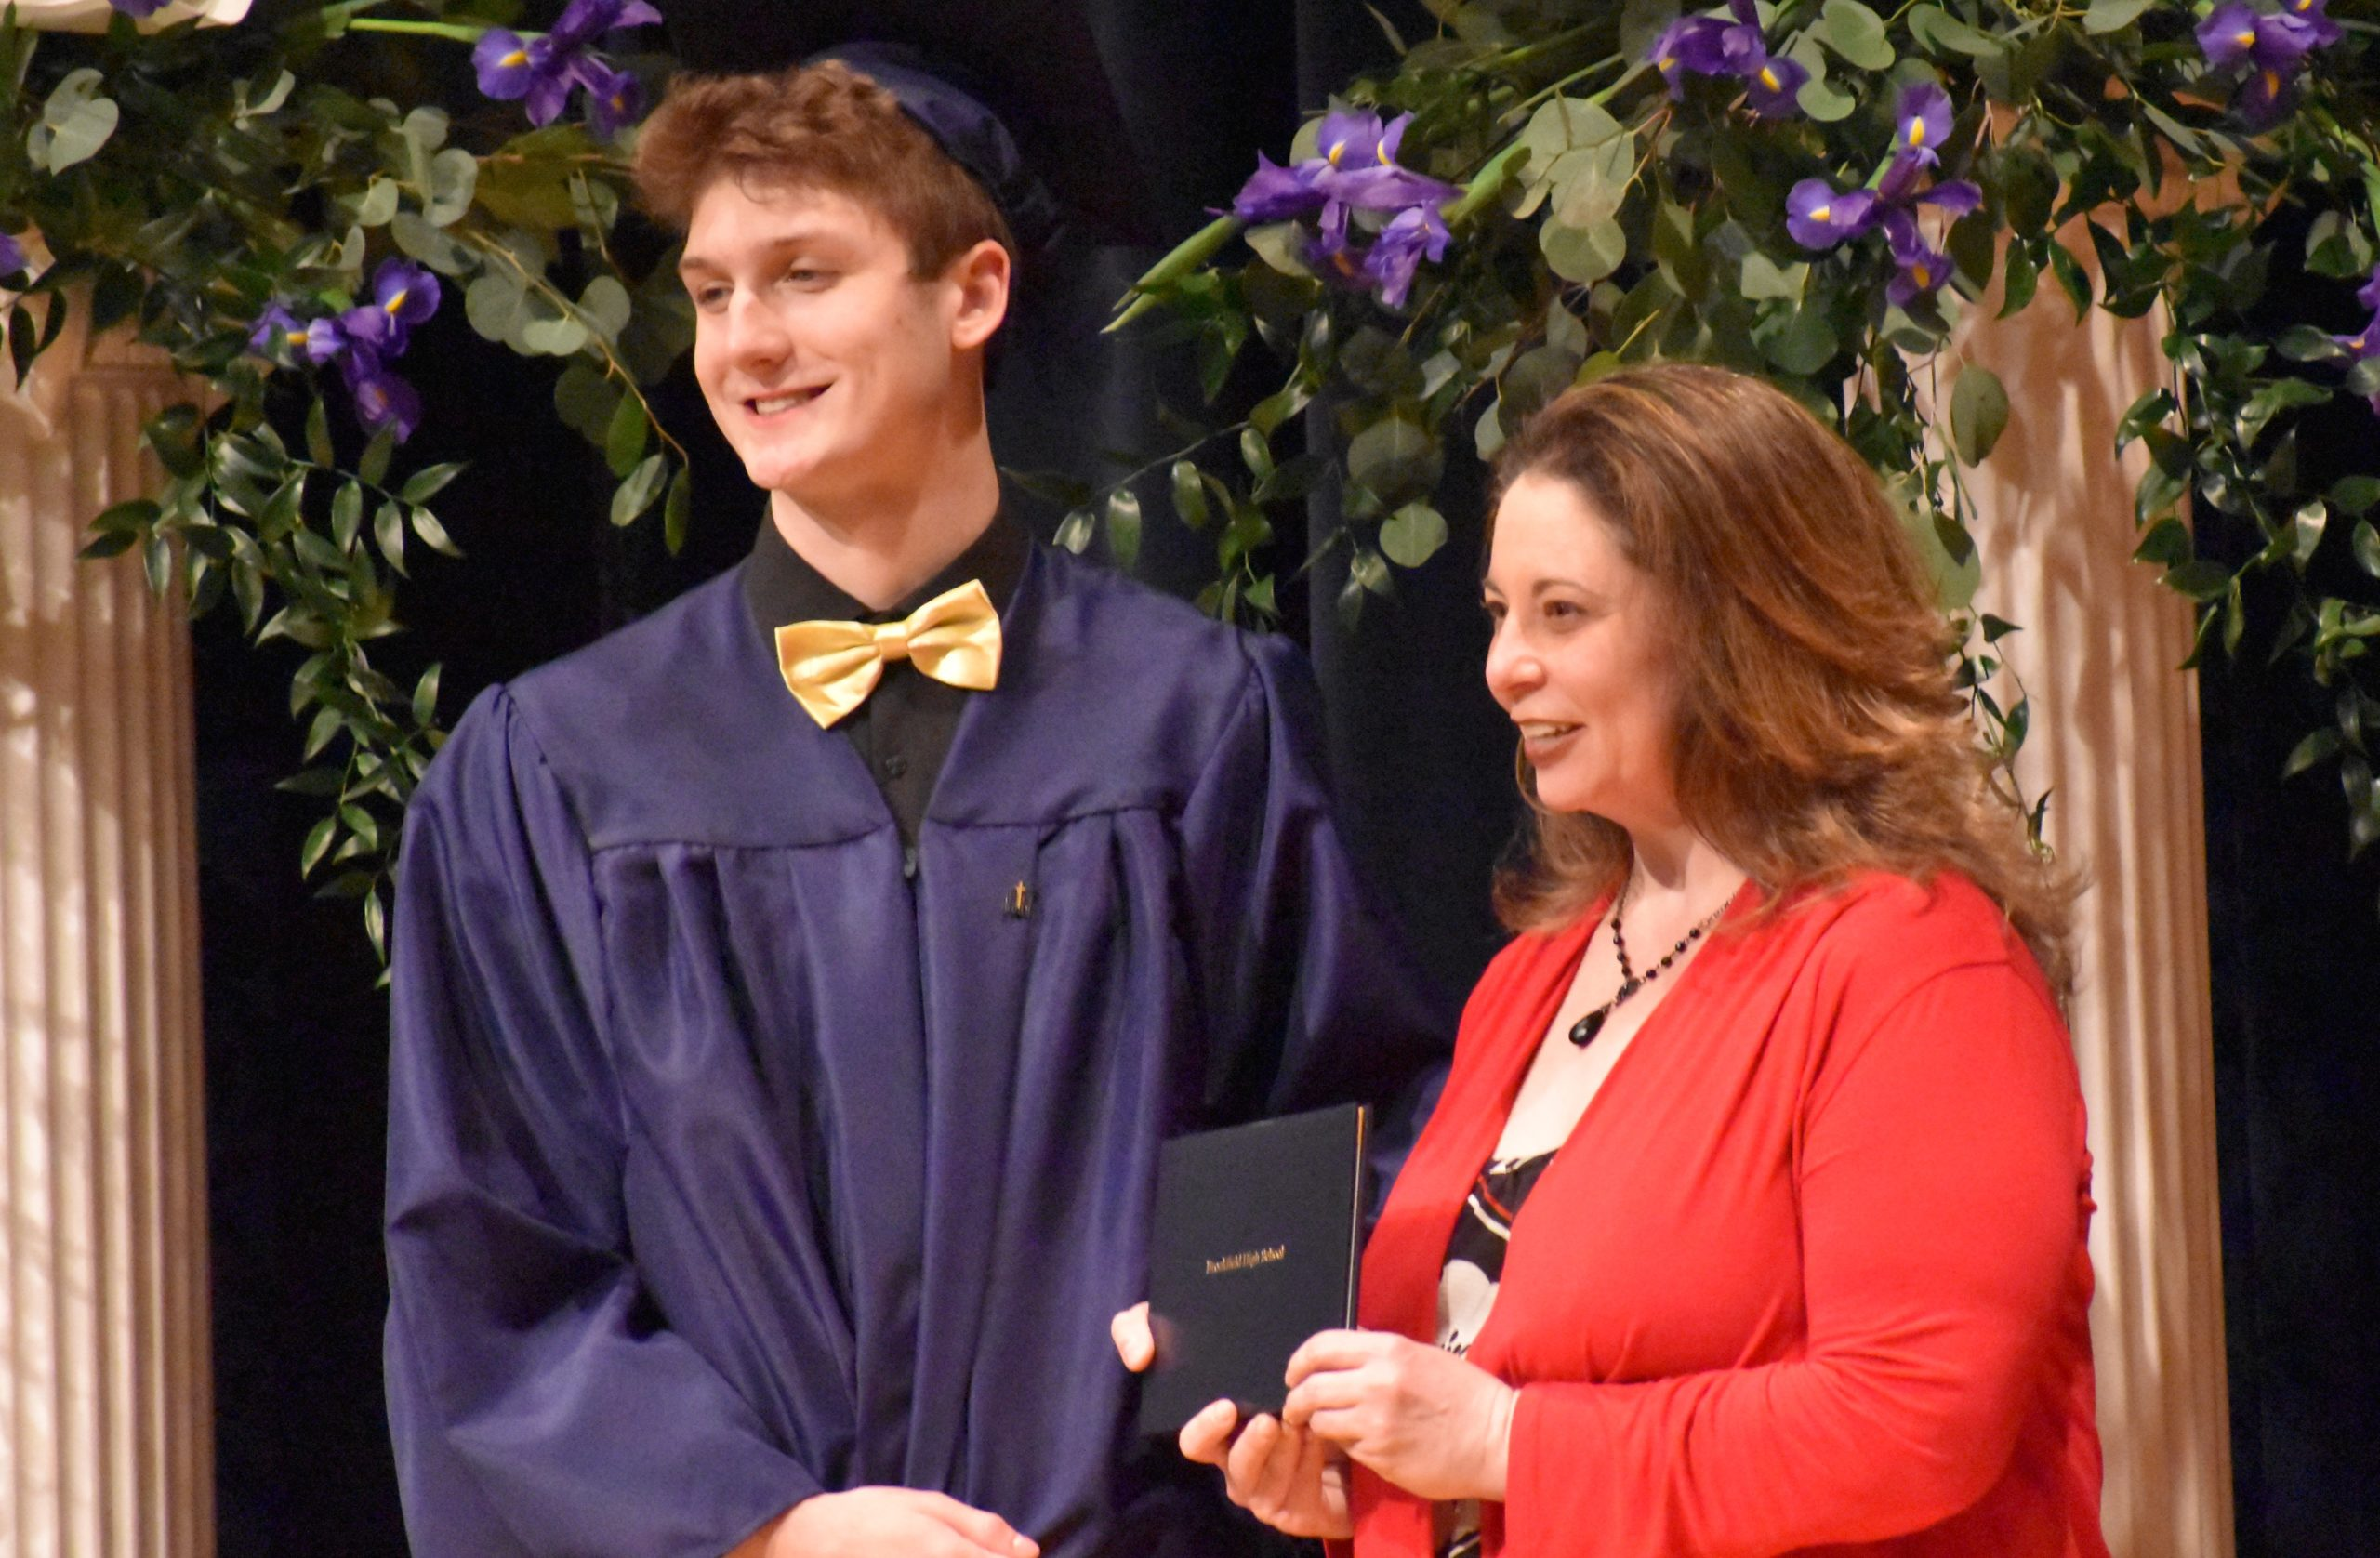 Ryan Logan is shown with Brookfield Board of Education member Melissa Sydlowski.